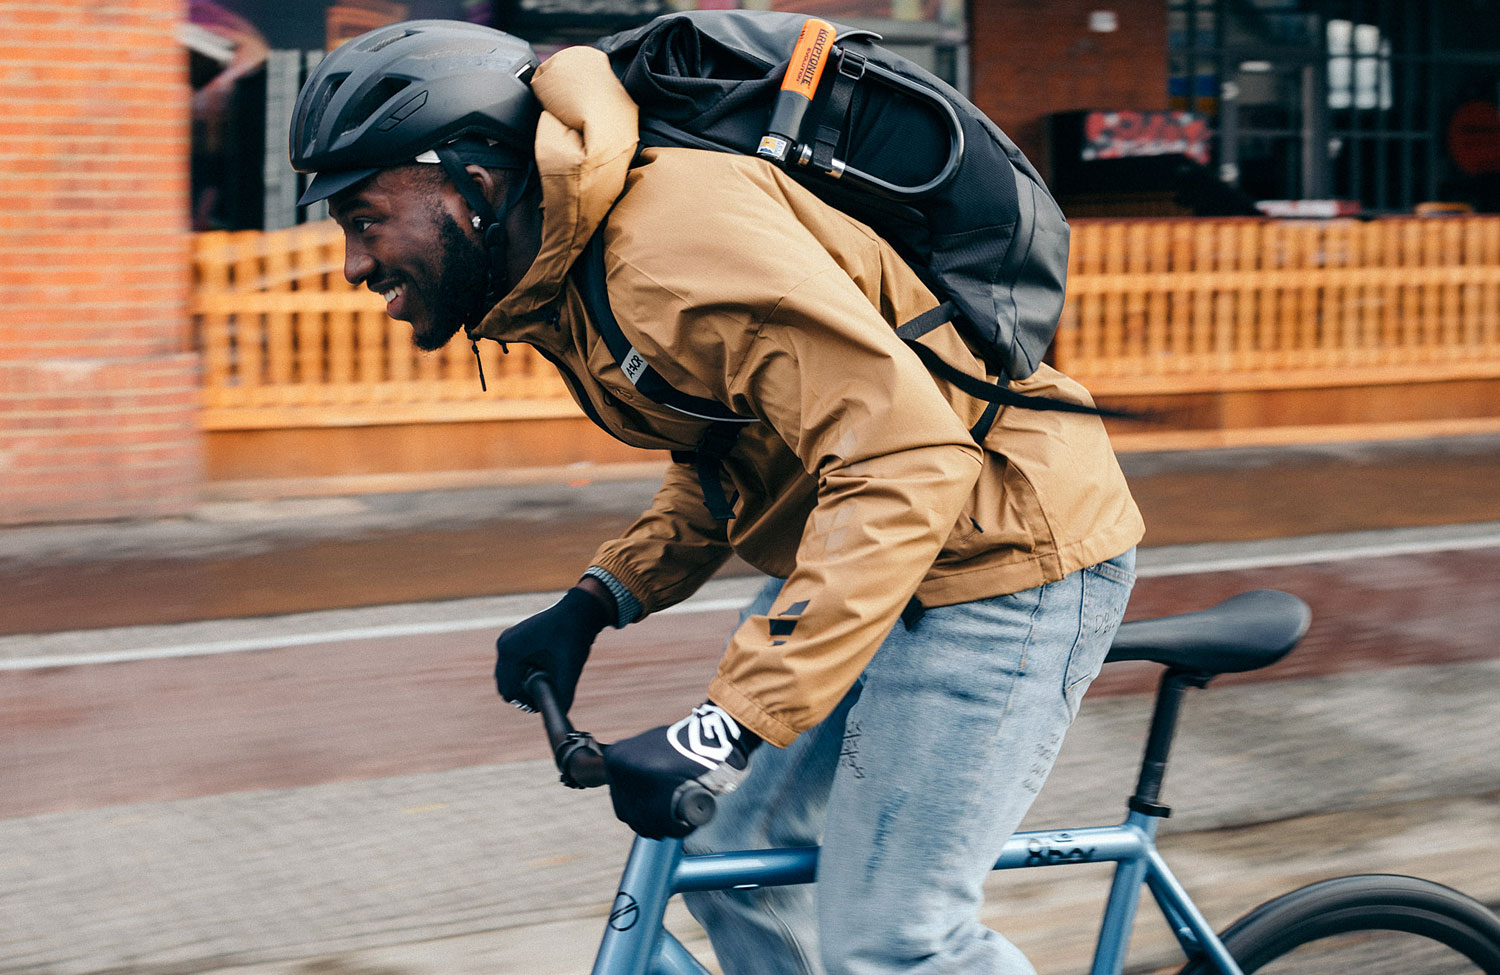 Aevor Bike Pack: Versatile backpack especially for cyclists